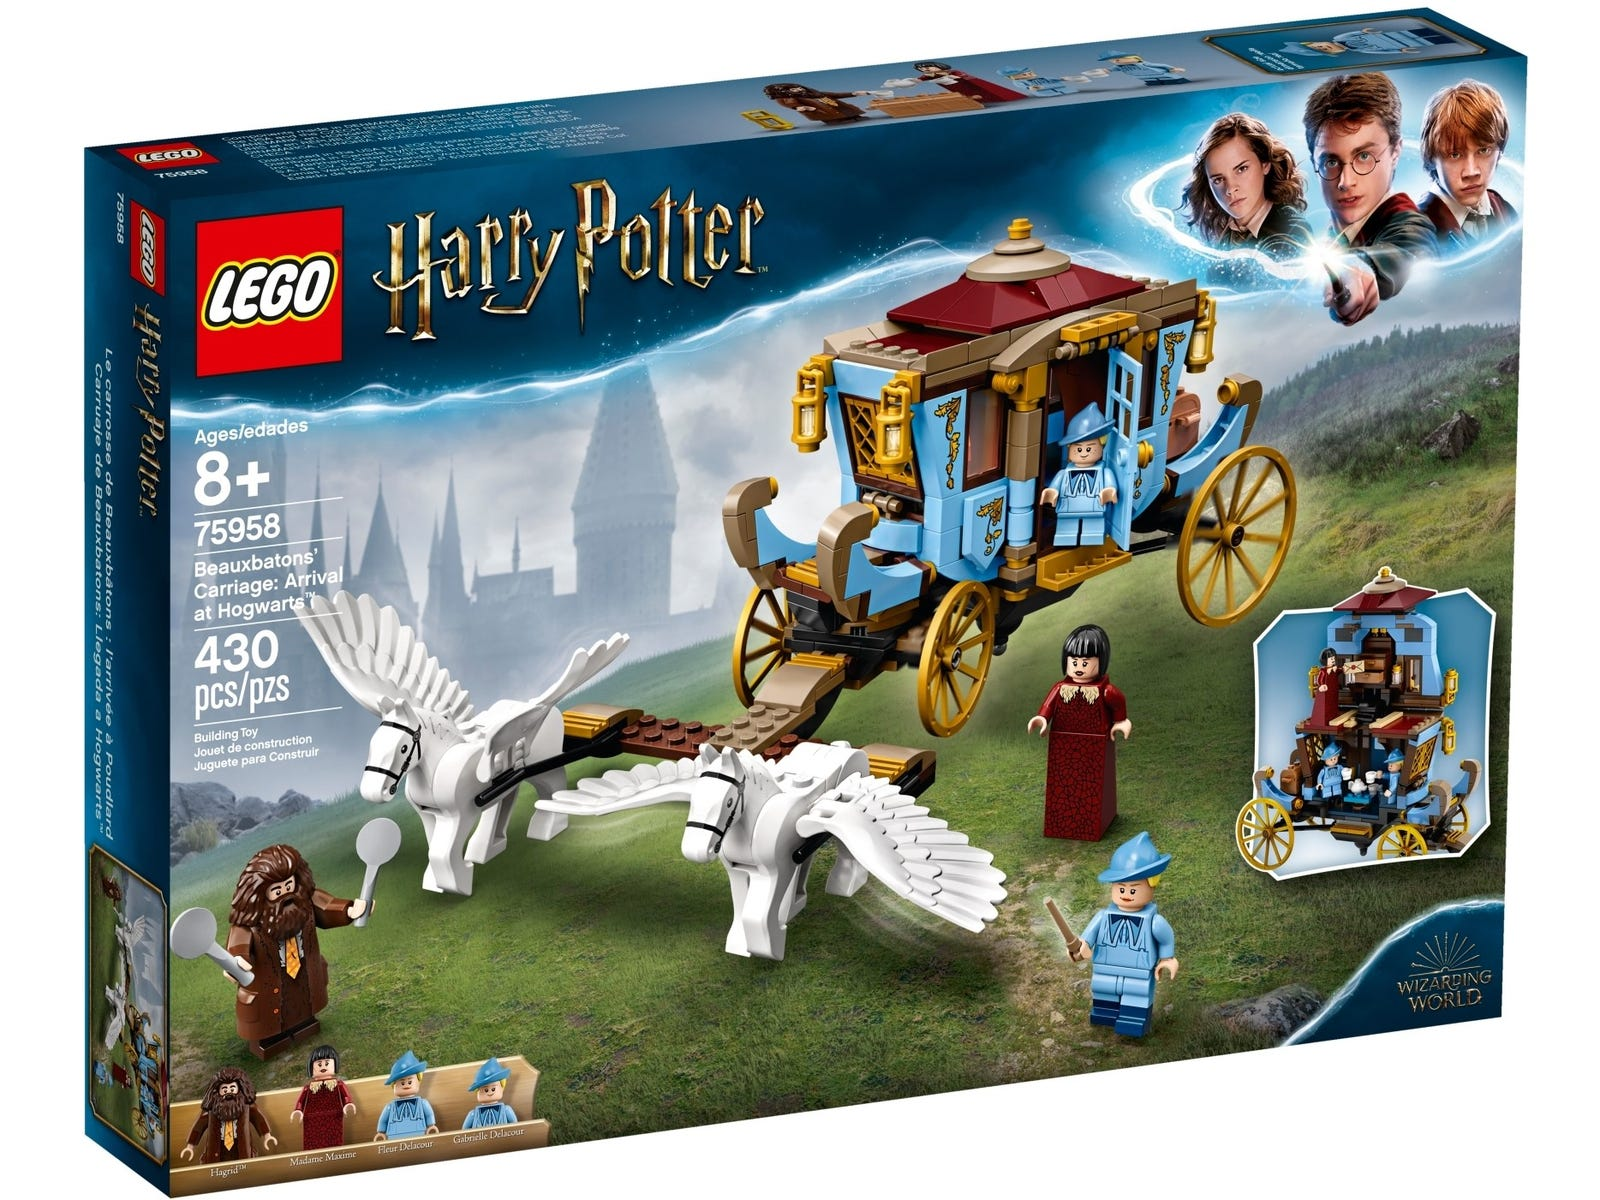 Beauxbatons Carriage Arrival At Hogwarts 75958 Harry Potter Buy Online At The Official Lego Shop Hu 1 year ago1 year ago. lego